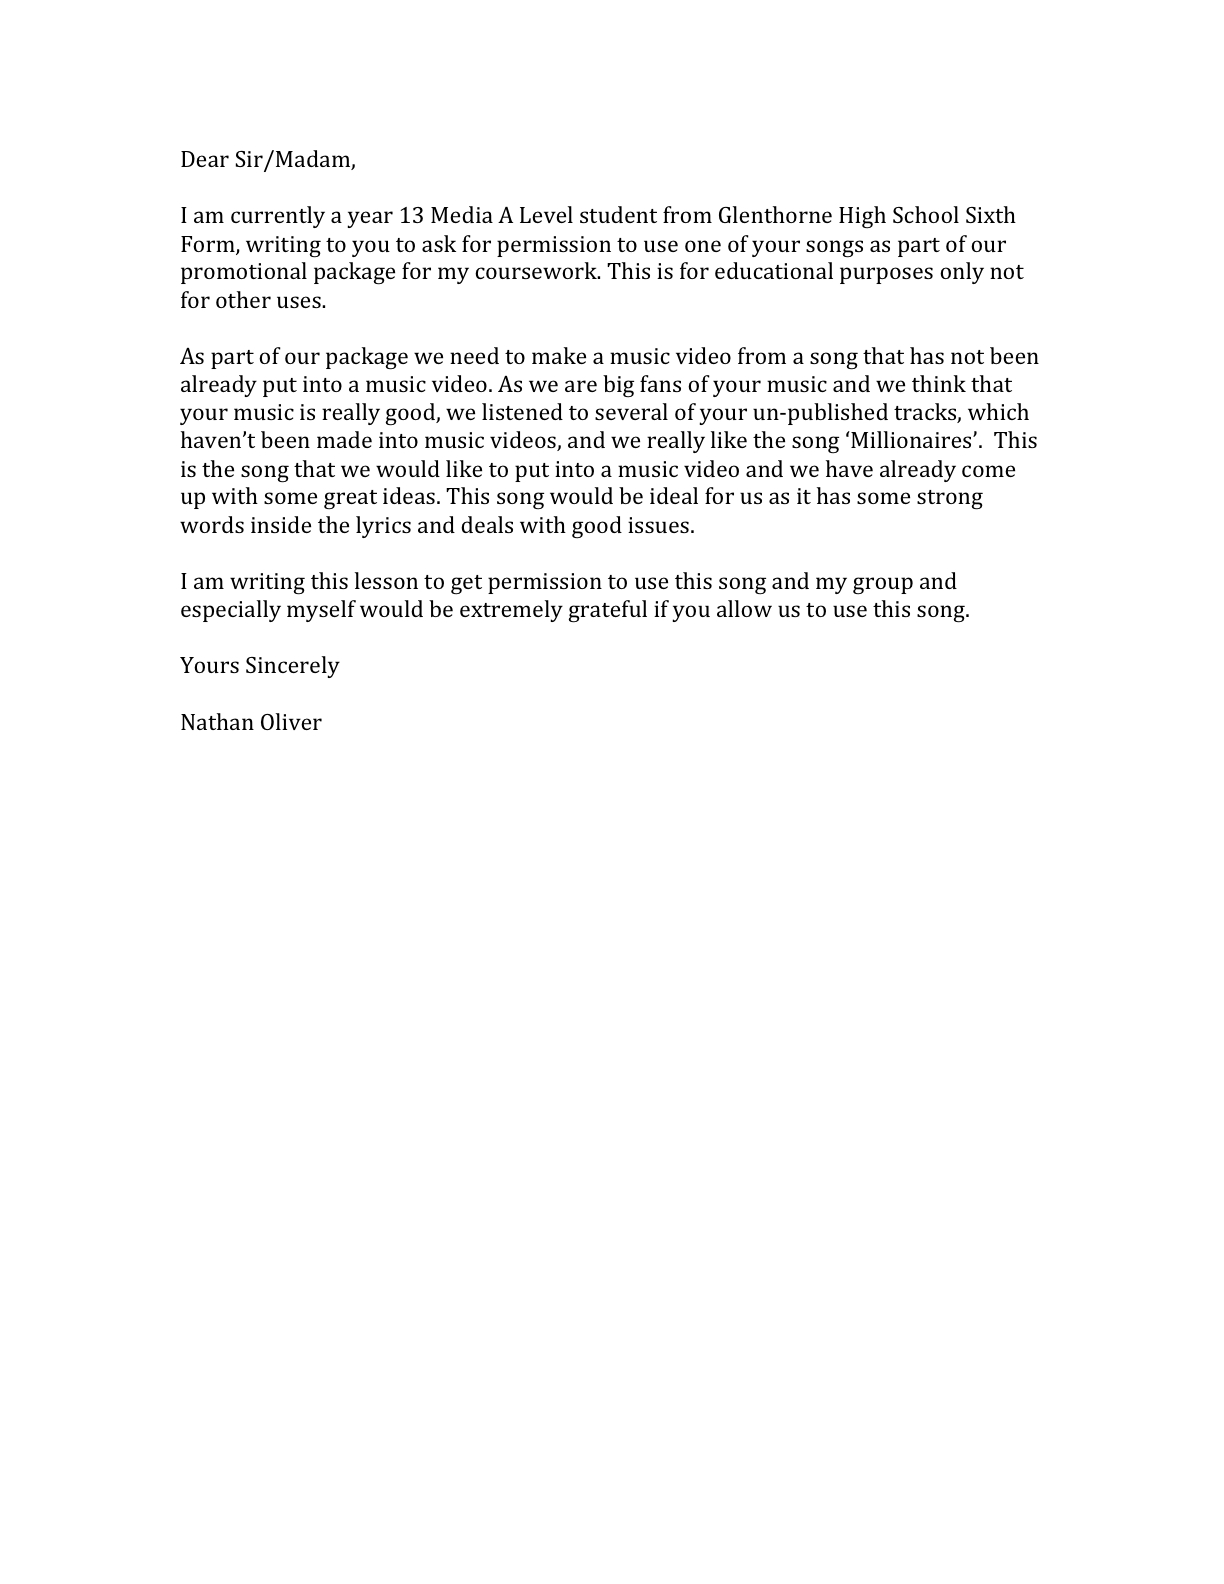 Nathan Oliver Permission Letter